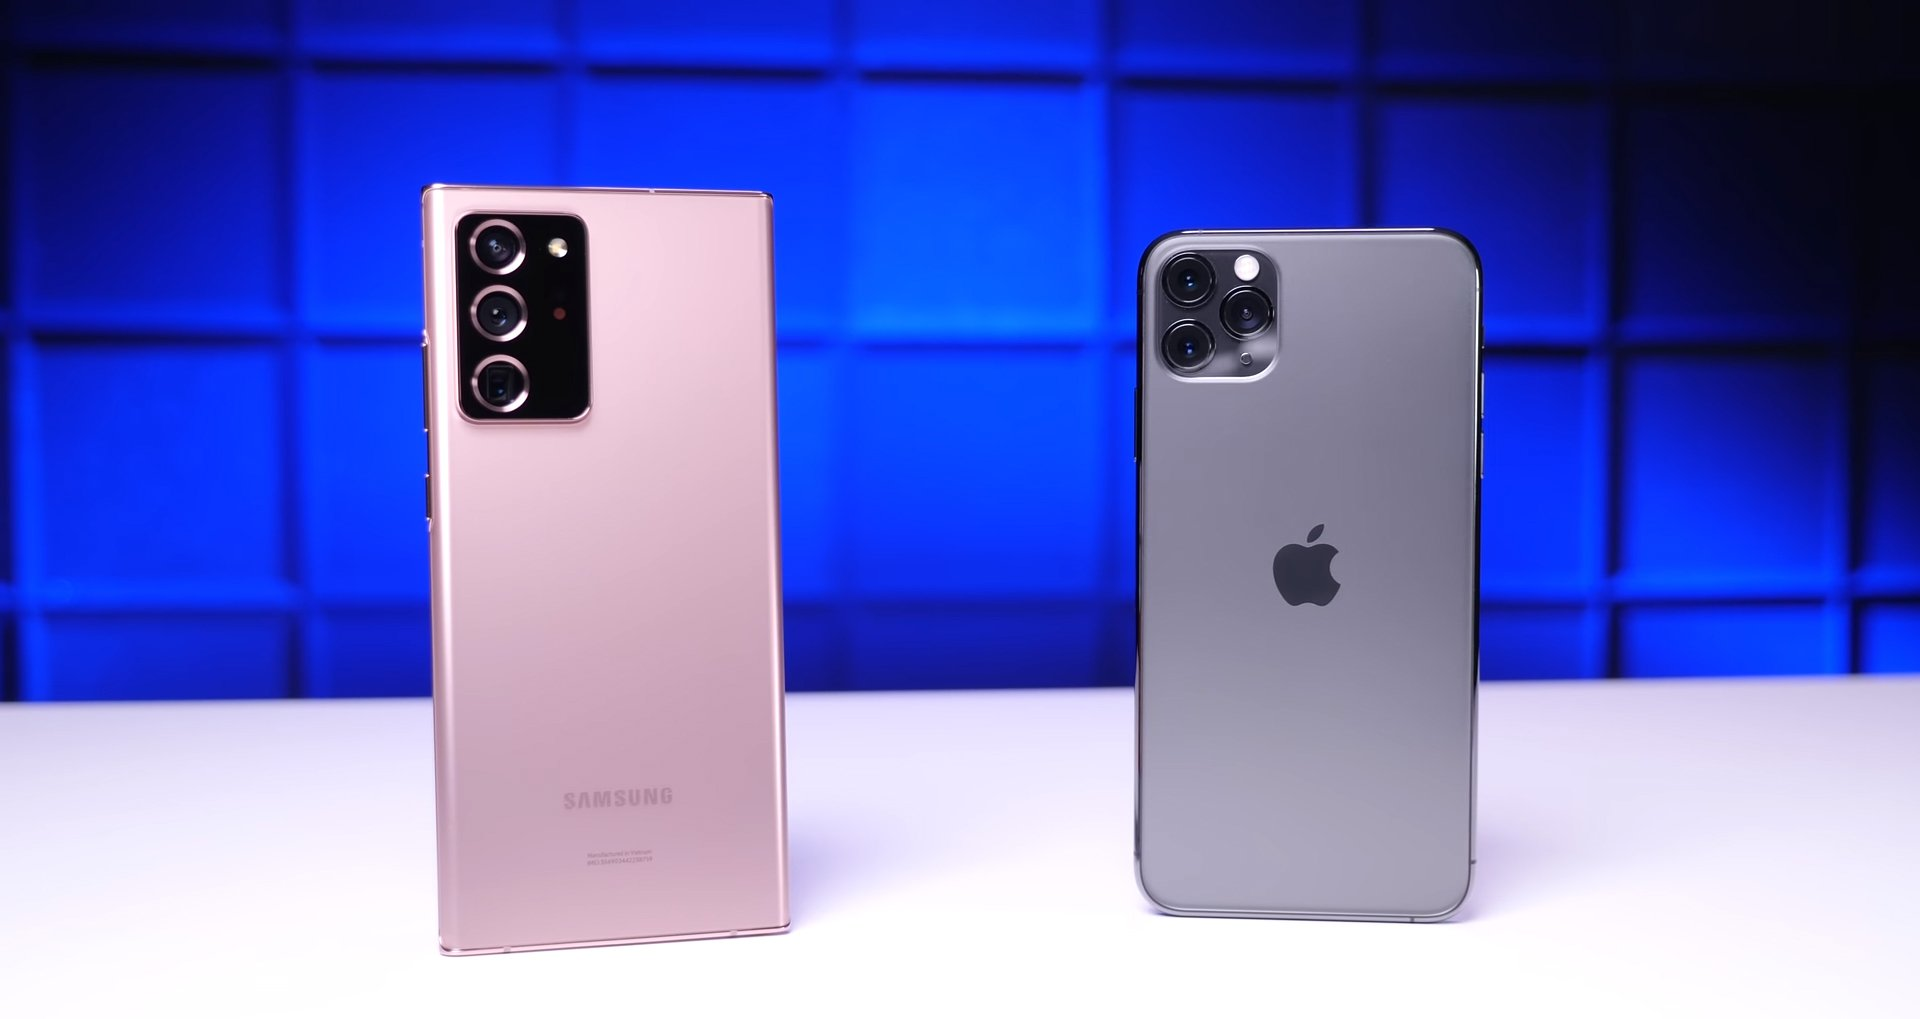 iPhone 11 Pro Max ve Galaxy Note 20 Ultra Düşürme Testi